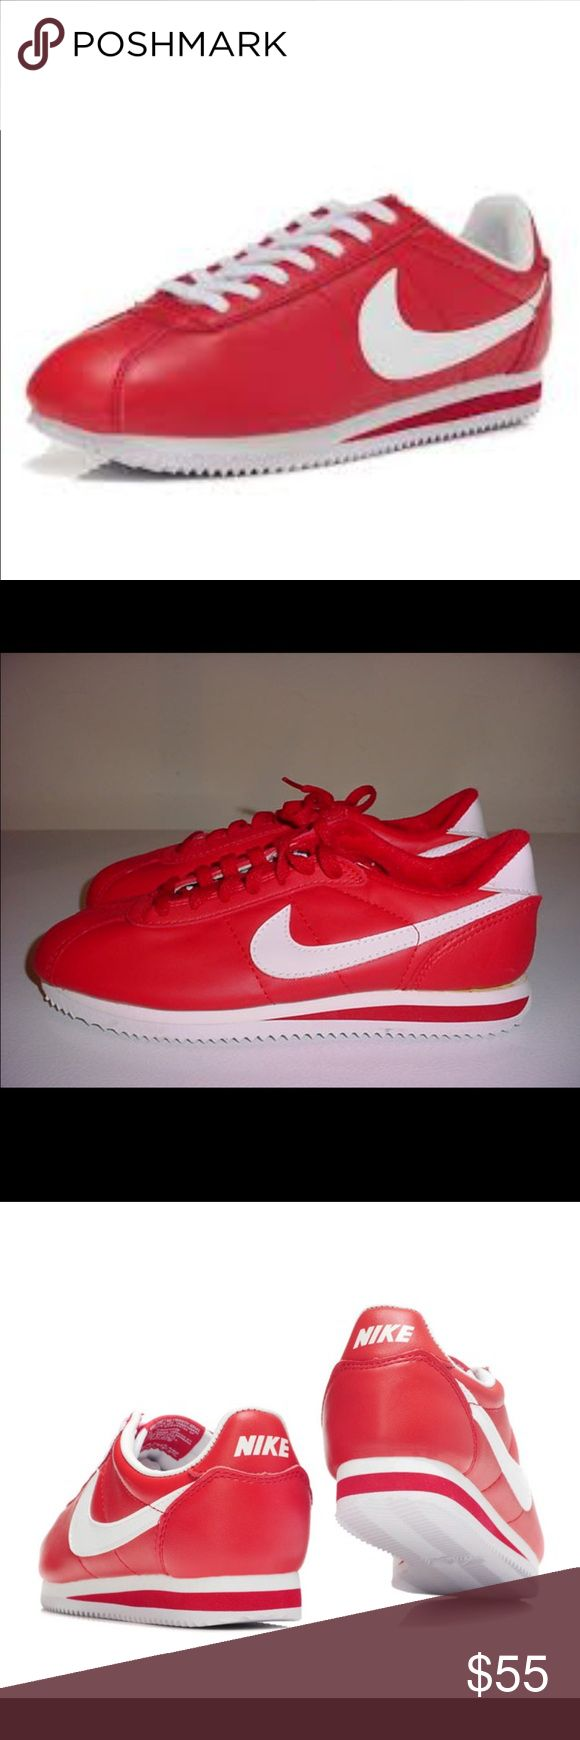 Nike Cortez Red Leather Worn once, brand new condition. Men's size 7/ women's size 8.5 Nike Shoes Sneakers